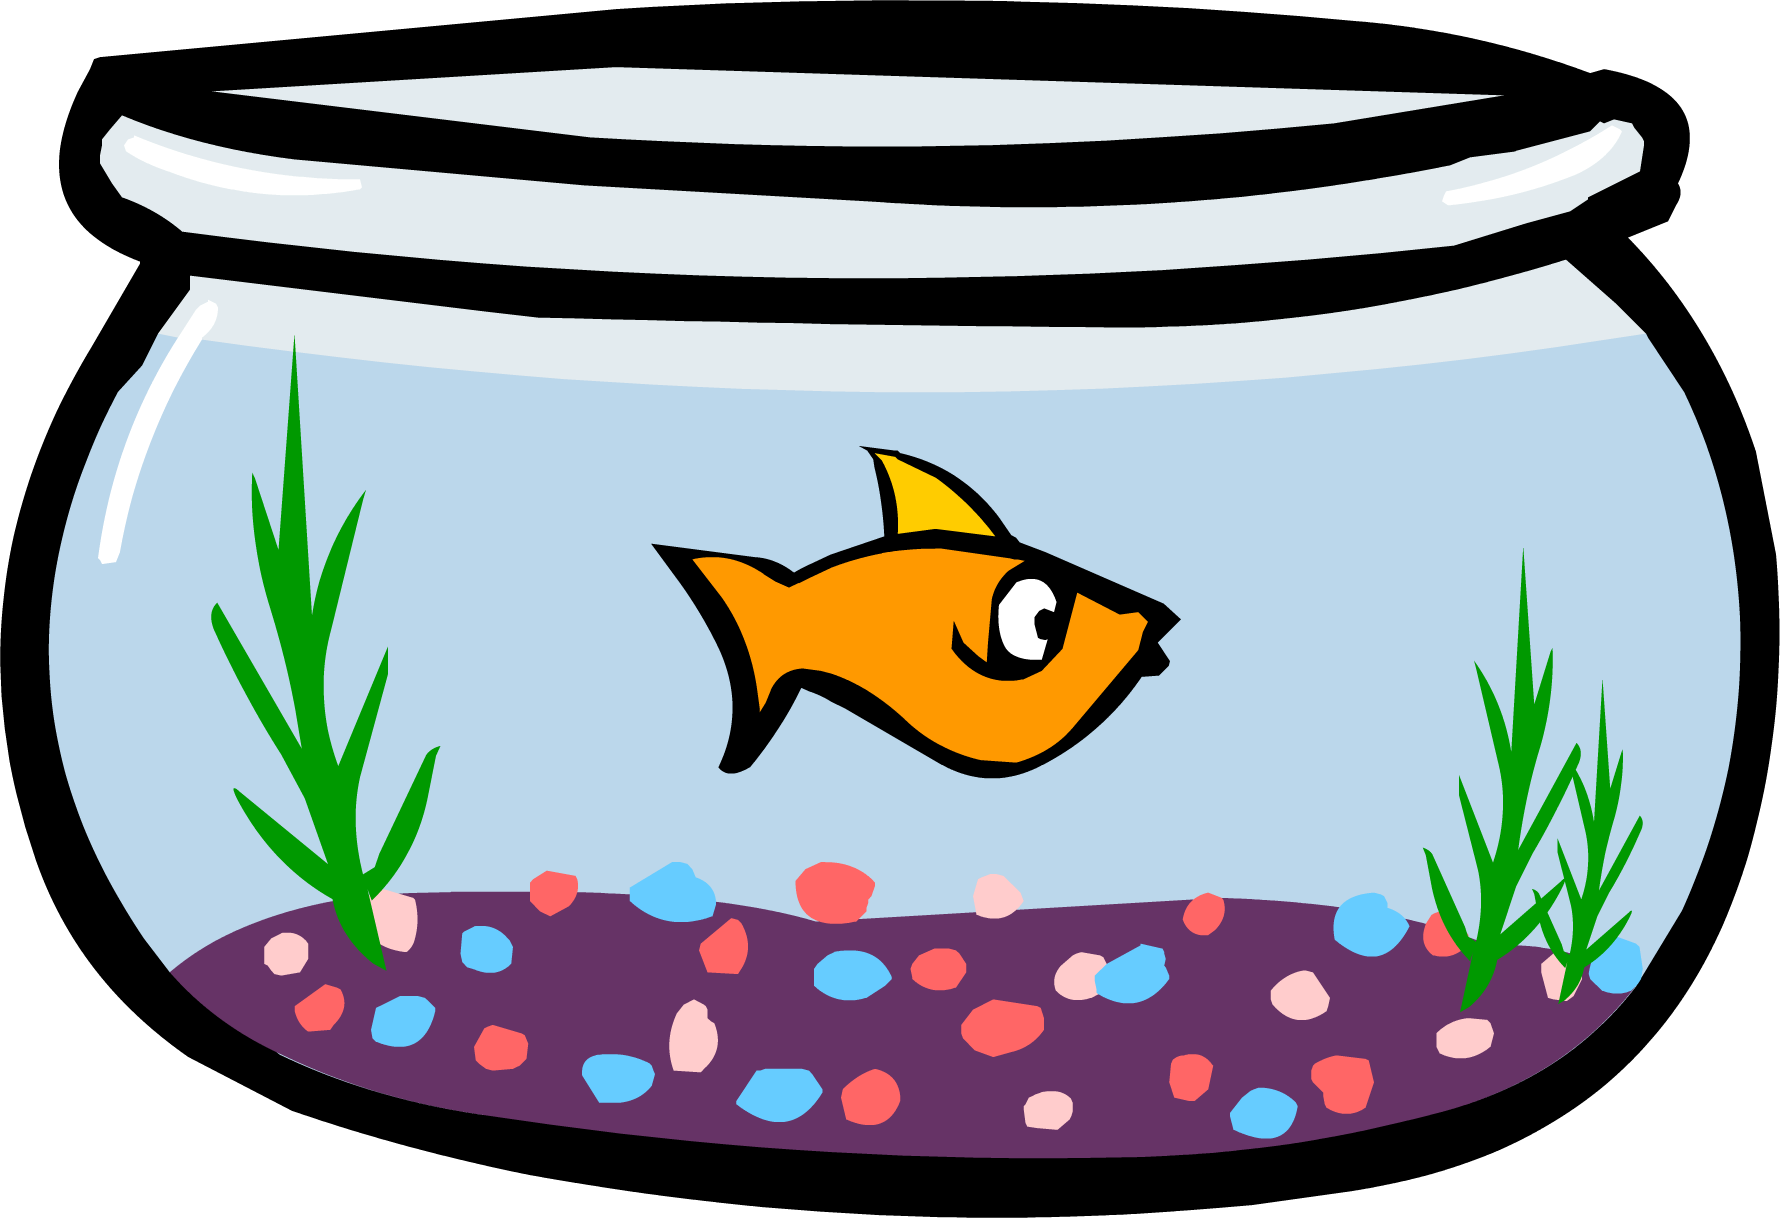 clip art freeuse stock Fishbowl clipart. Fish bowl feeder free.